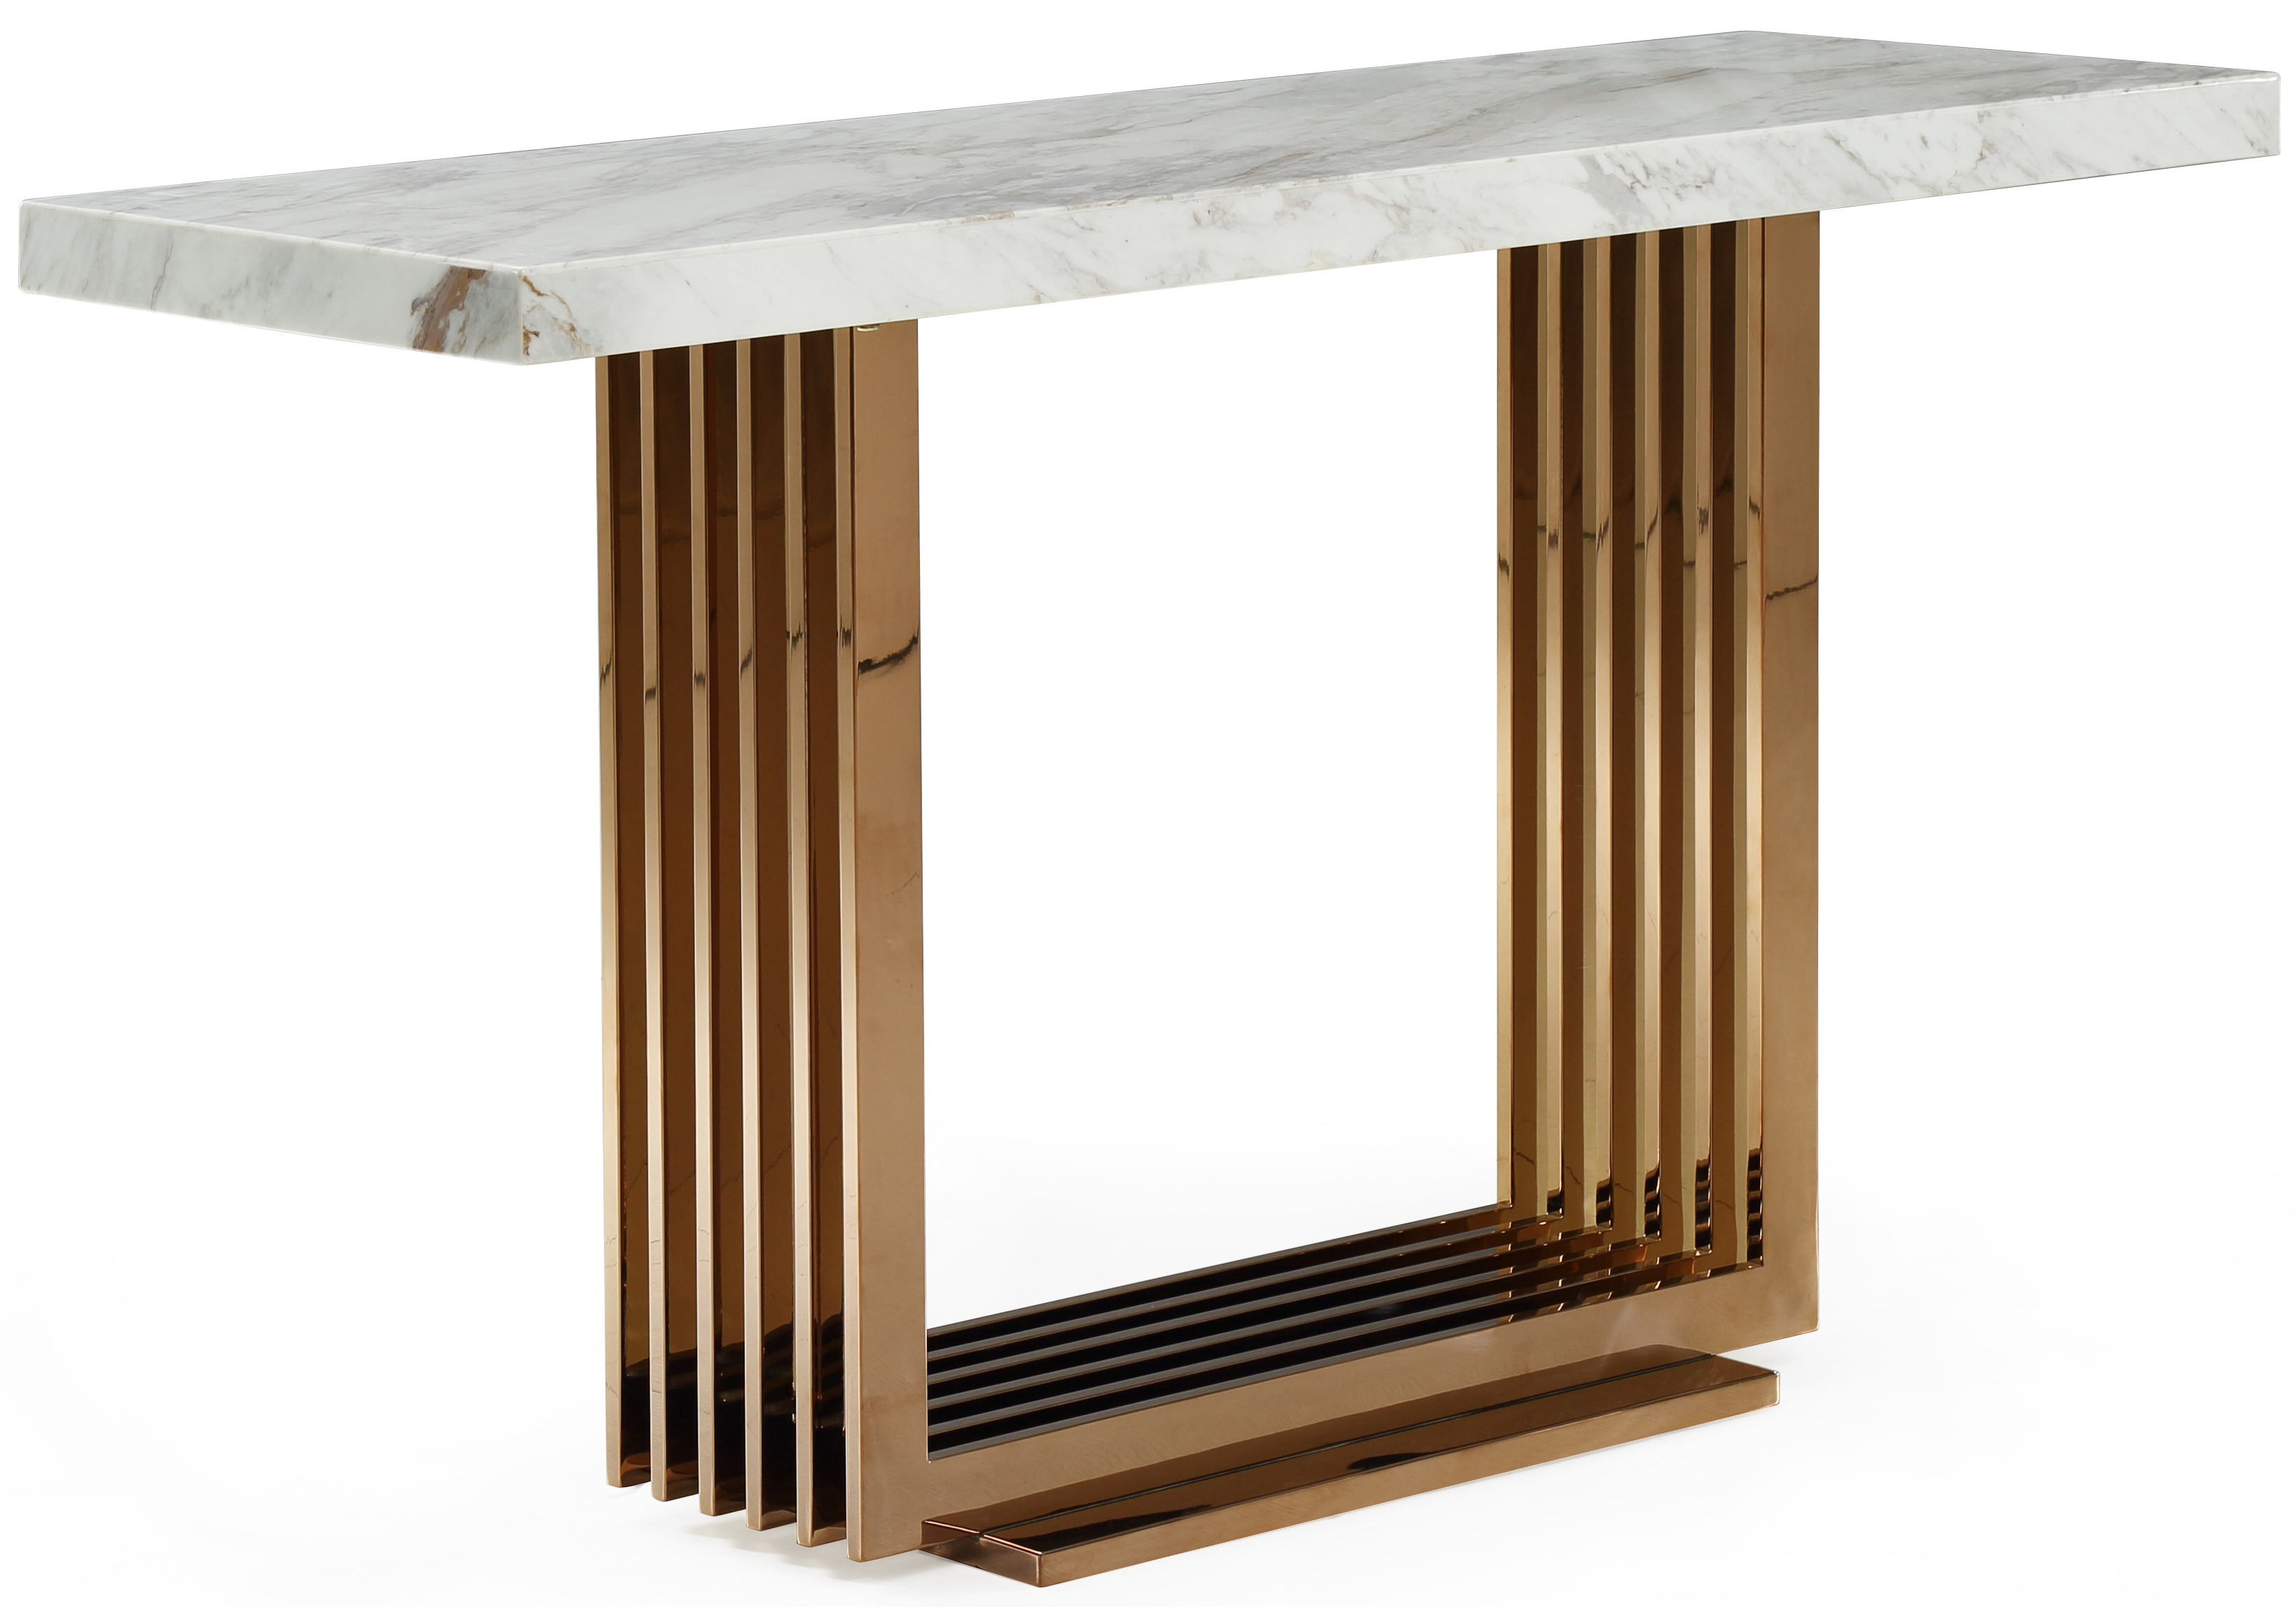 Superieur Check Out The New Fabrizio White Top Marble Console Table Available At  AdvancedInteriorDesigns.com ...